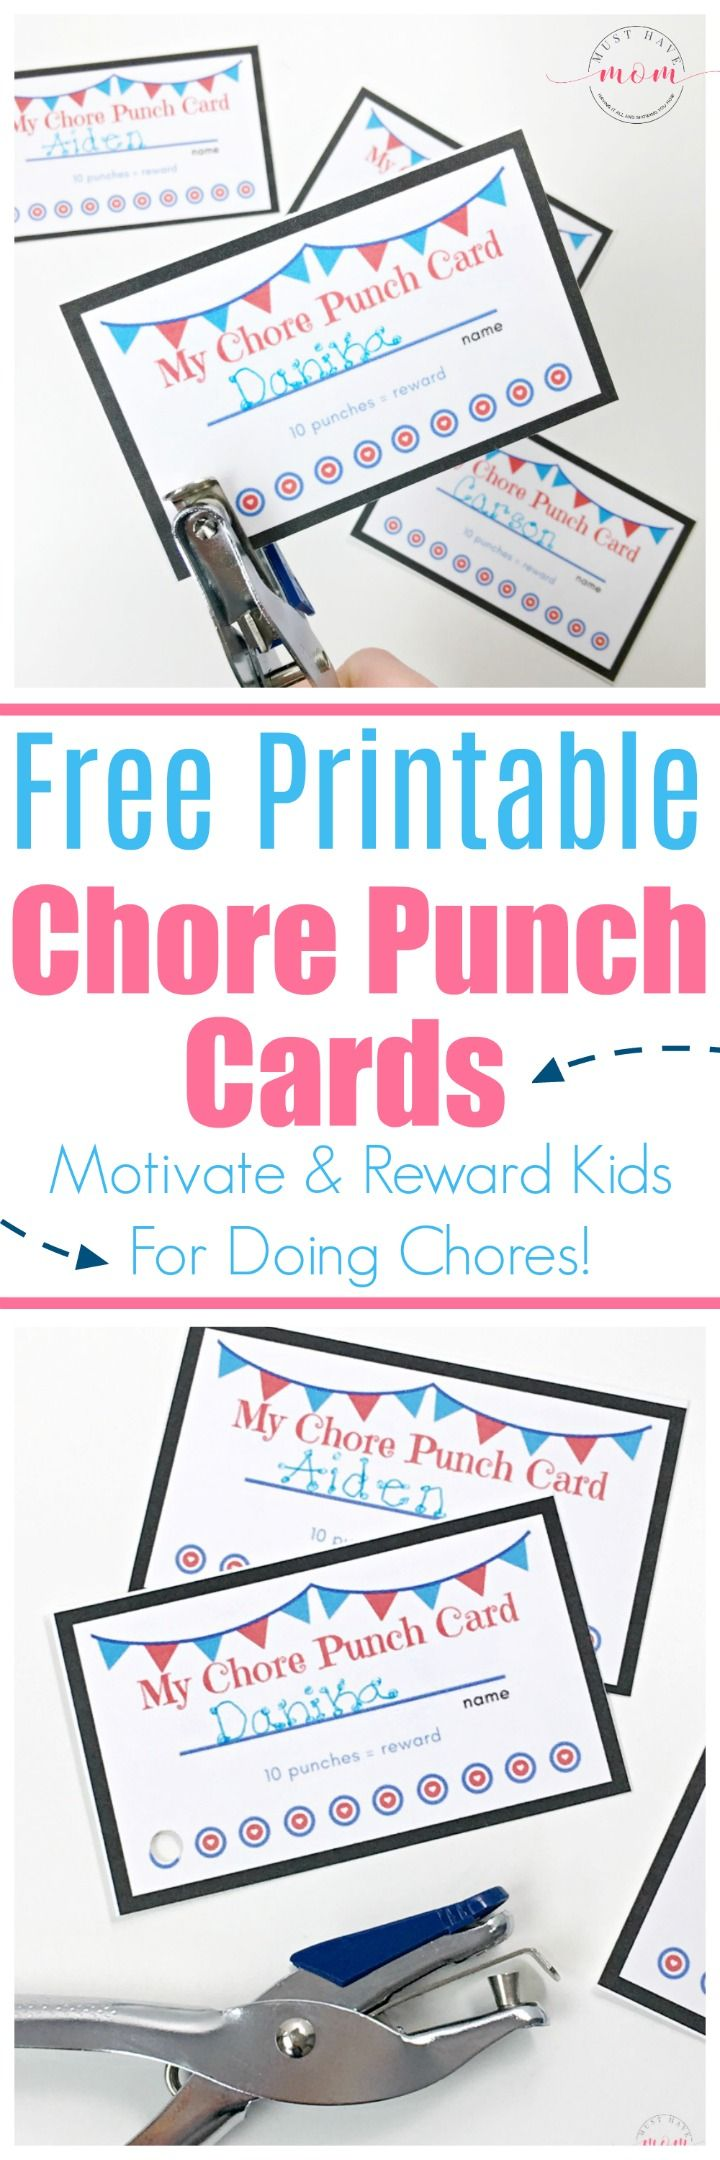 Free printable chore punch cards for kids. Get your kids to do chores without complaining!